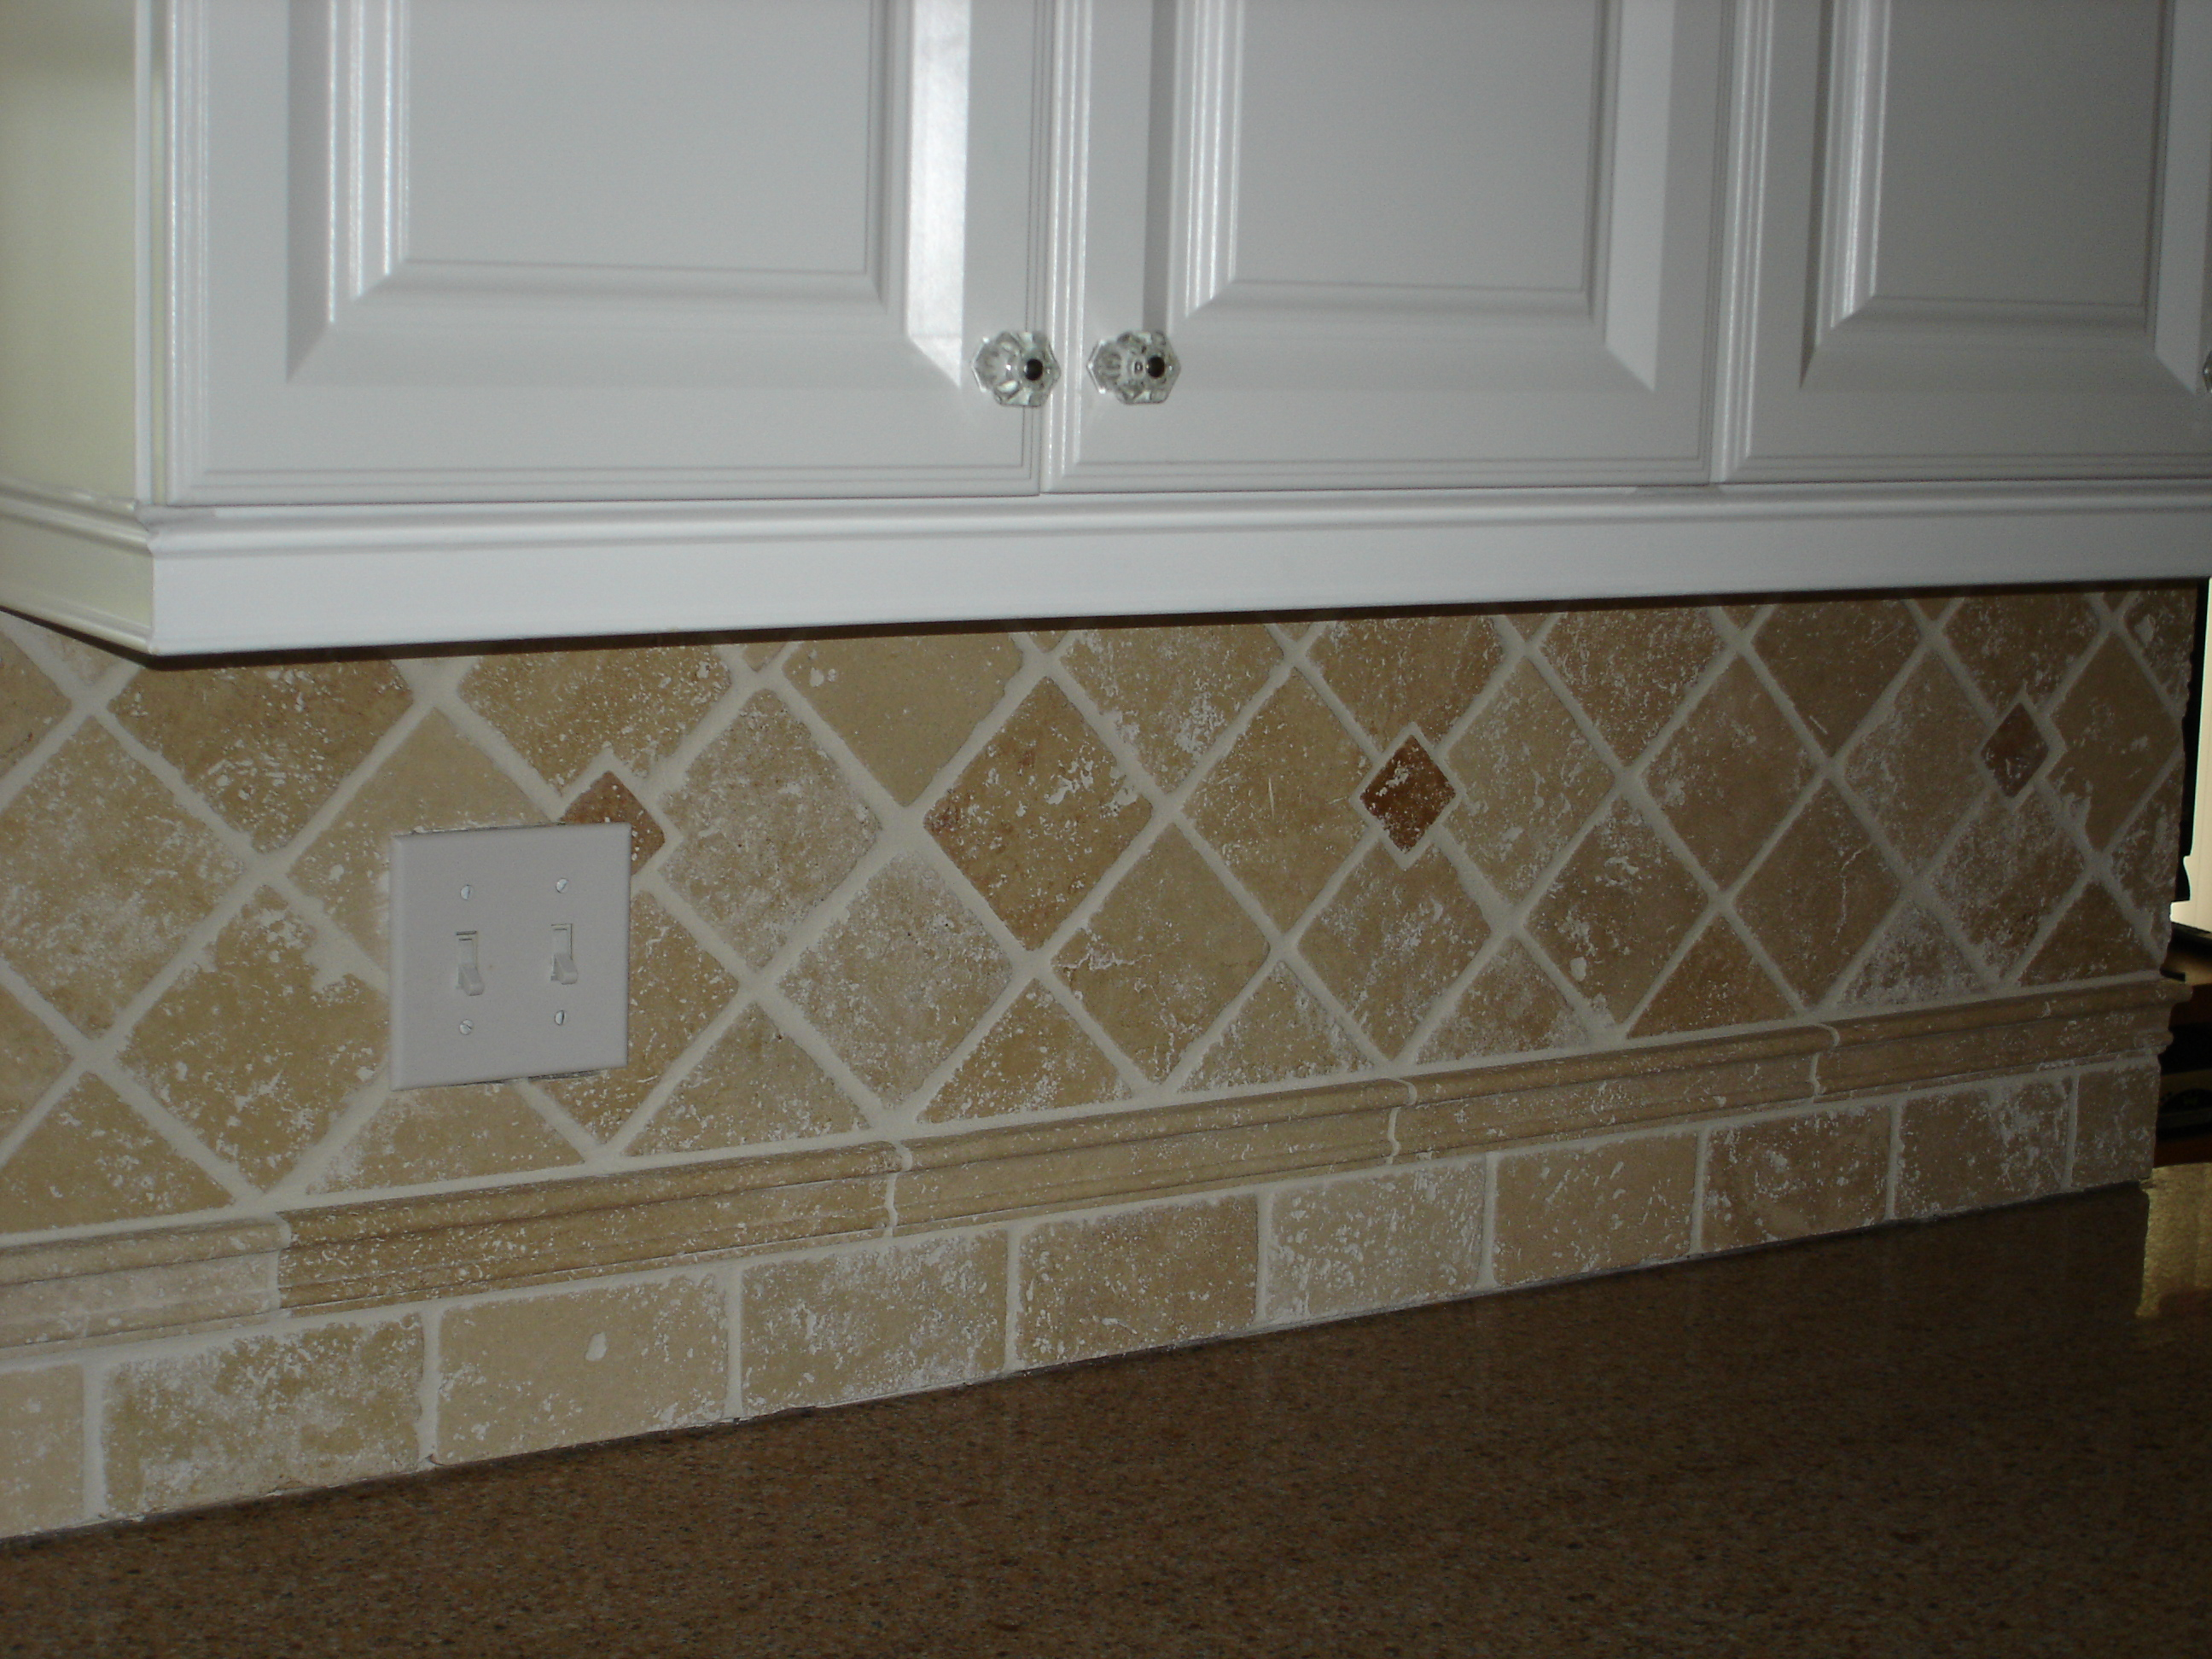 Amazing Kitchen Backsplash Tile Design Idea 2592 x 1944 · 2098 kB · jpeg